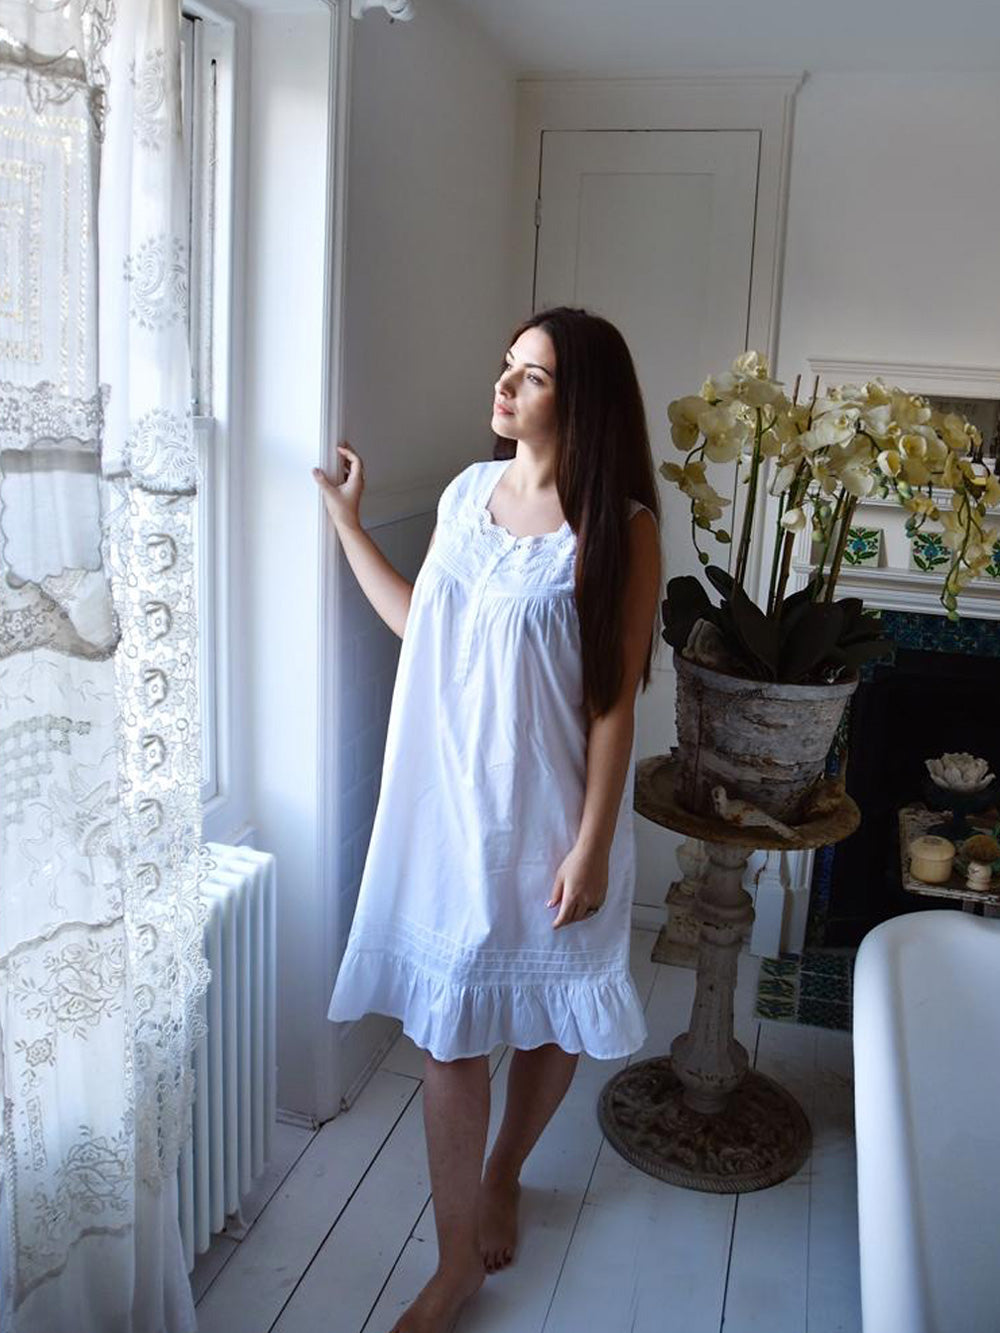 Sleeveless White Pure Cotton Ladies Nightdress